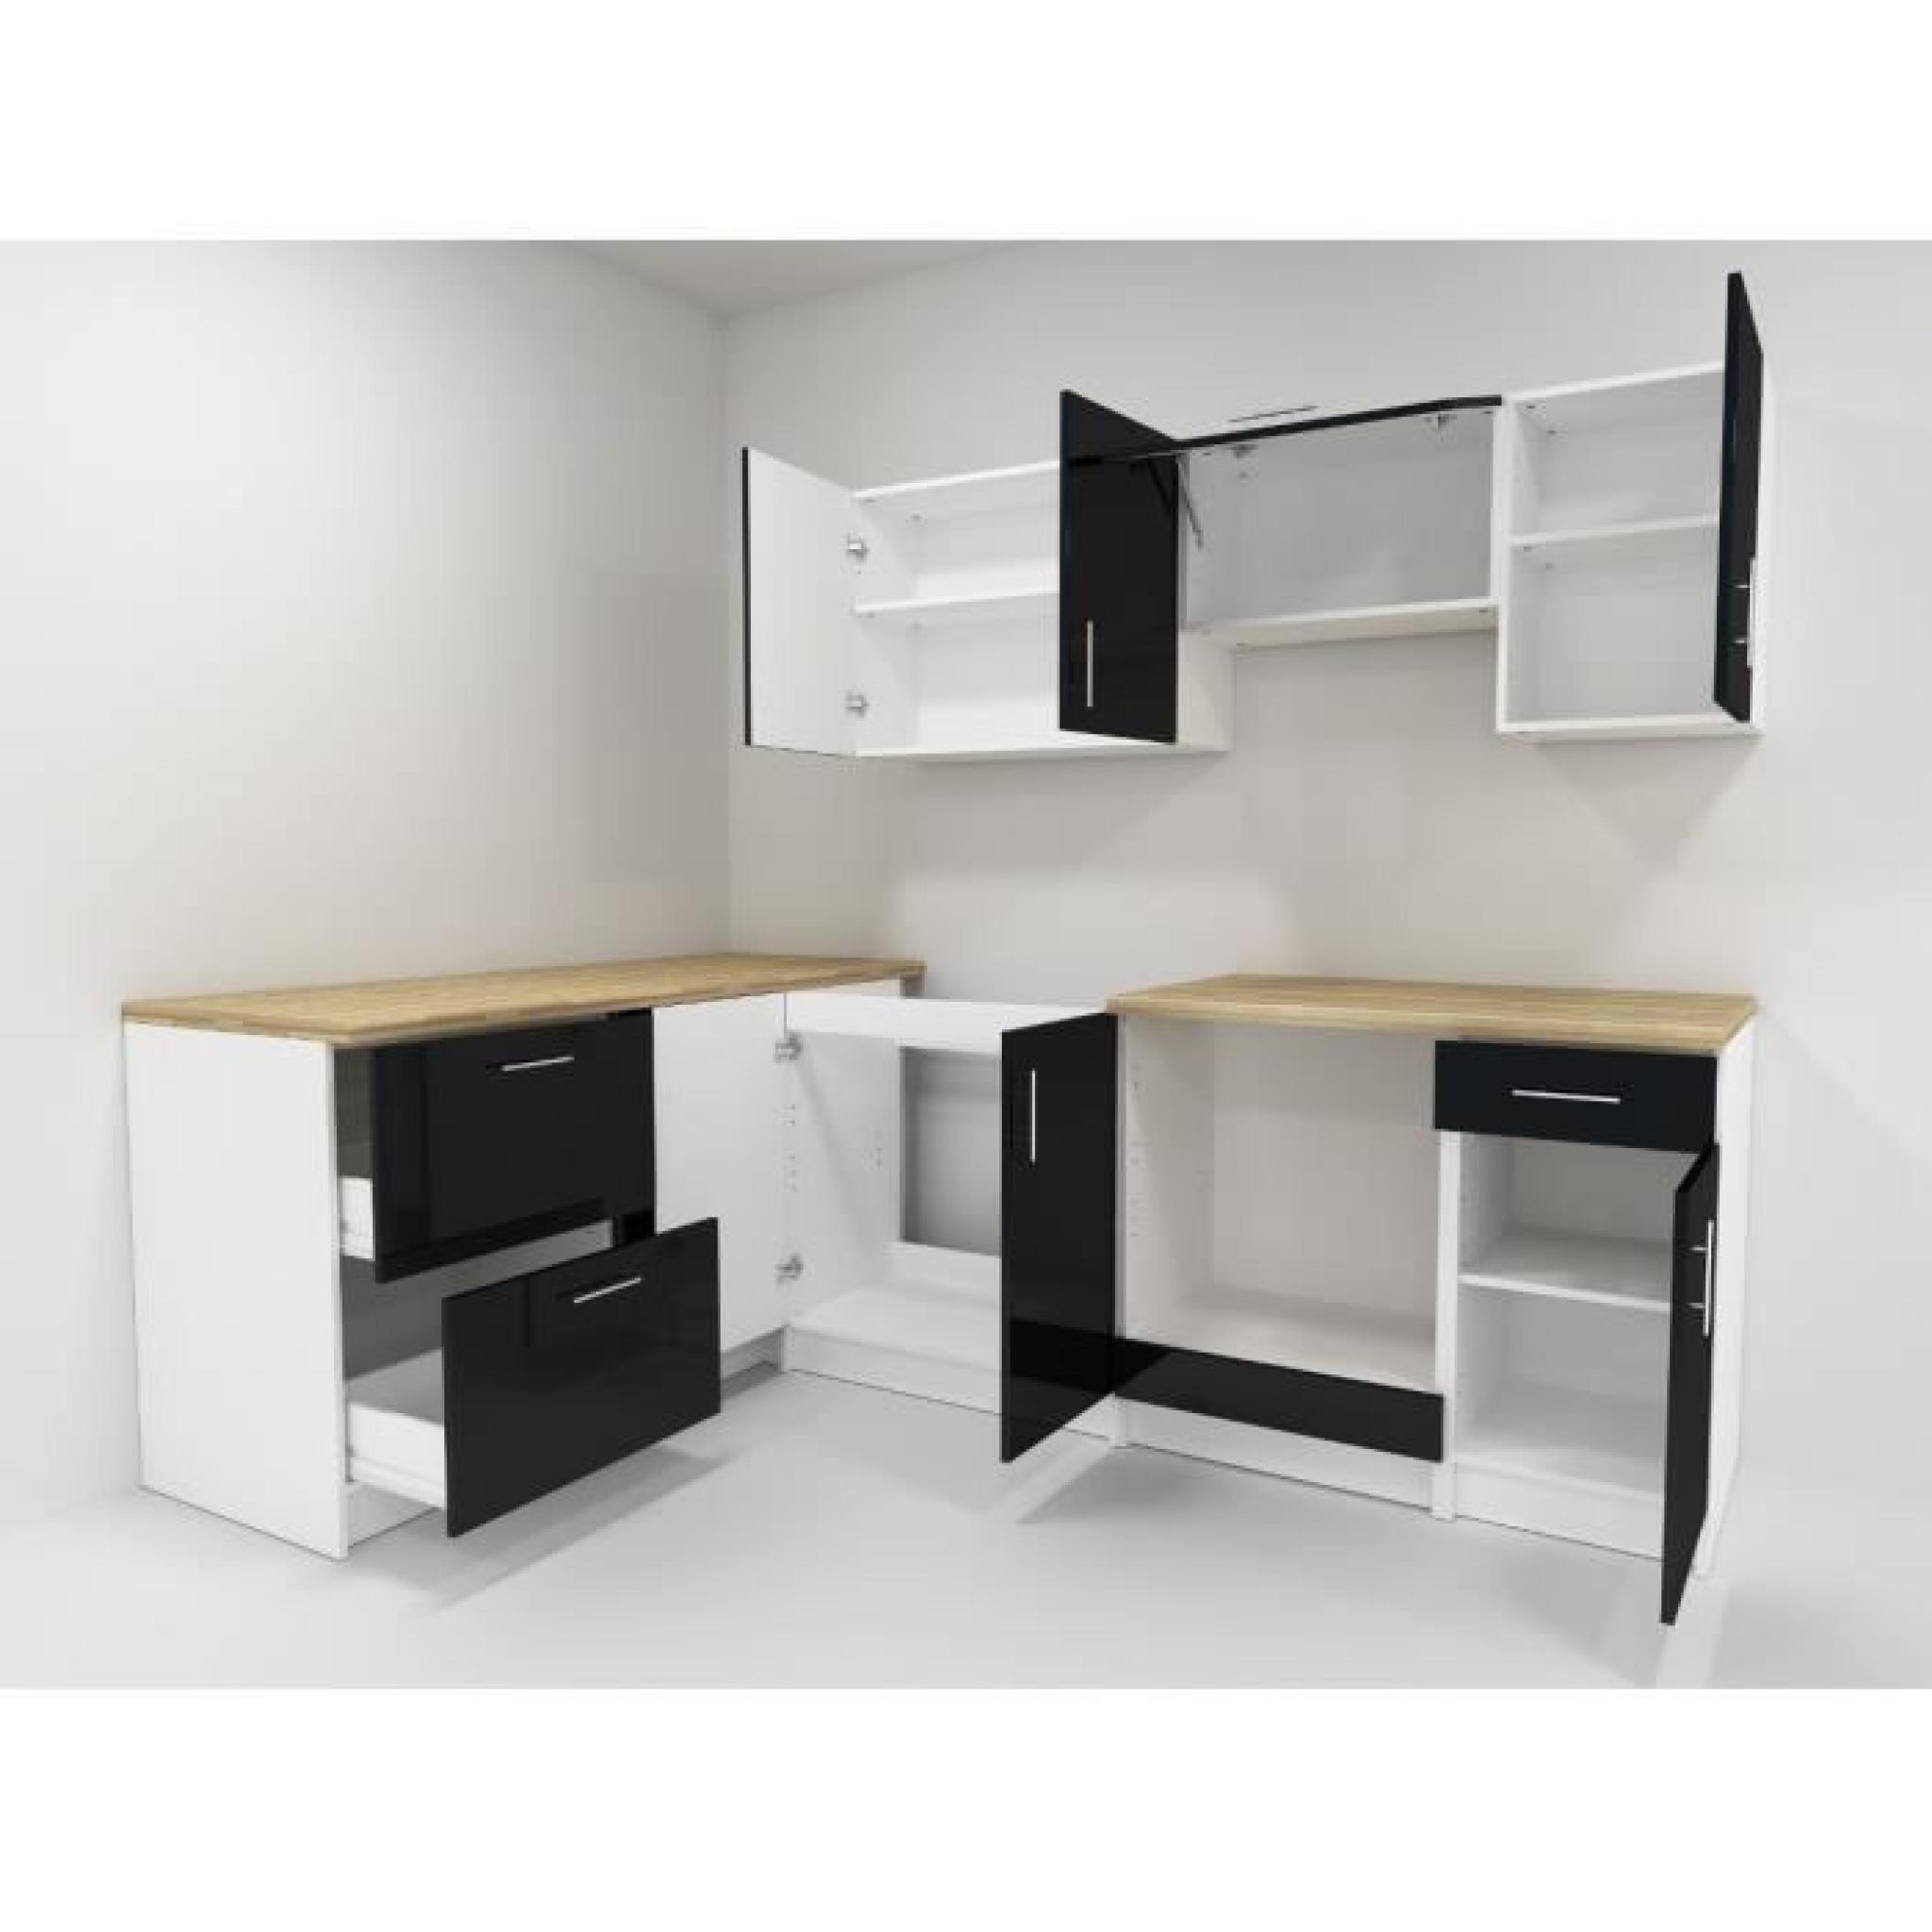 cosy cuisine compl te 2m80 laqu noir achat vente. Black Bedroom Furniture Sets. Home Design Ideas